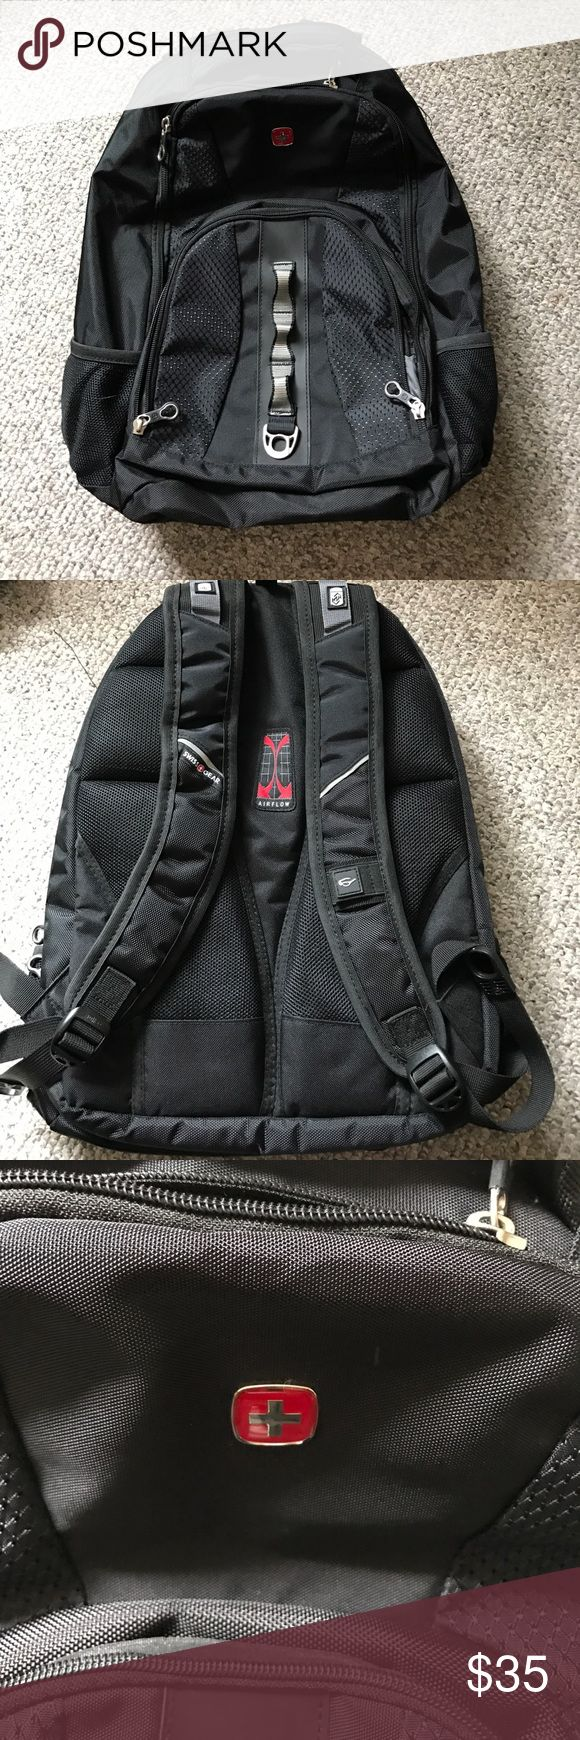 Backpack Swiss gear backpack with tons of compartments, laptop compartment with Velcro strap to keep laptop in place, outside water bottle pockets on both sides, like brand new and only used twice! Swiss Gear Bags Backpacks